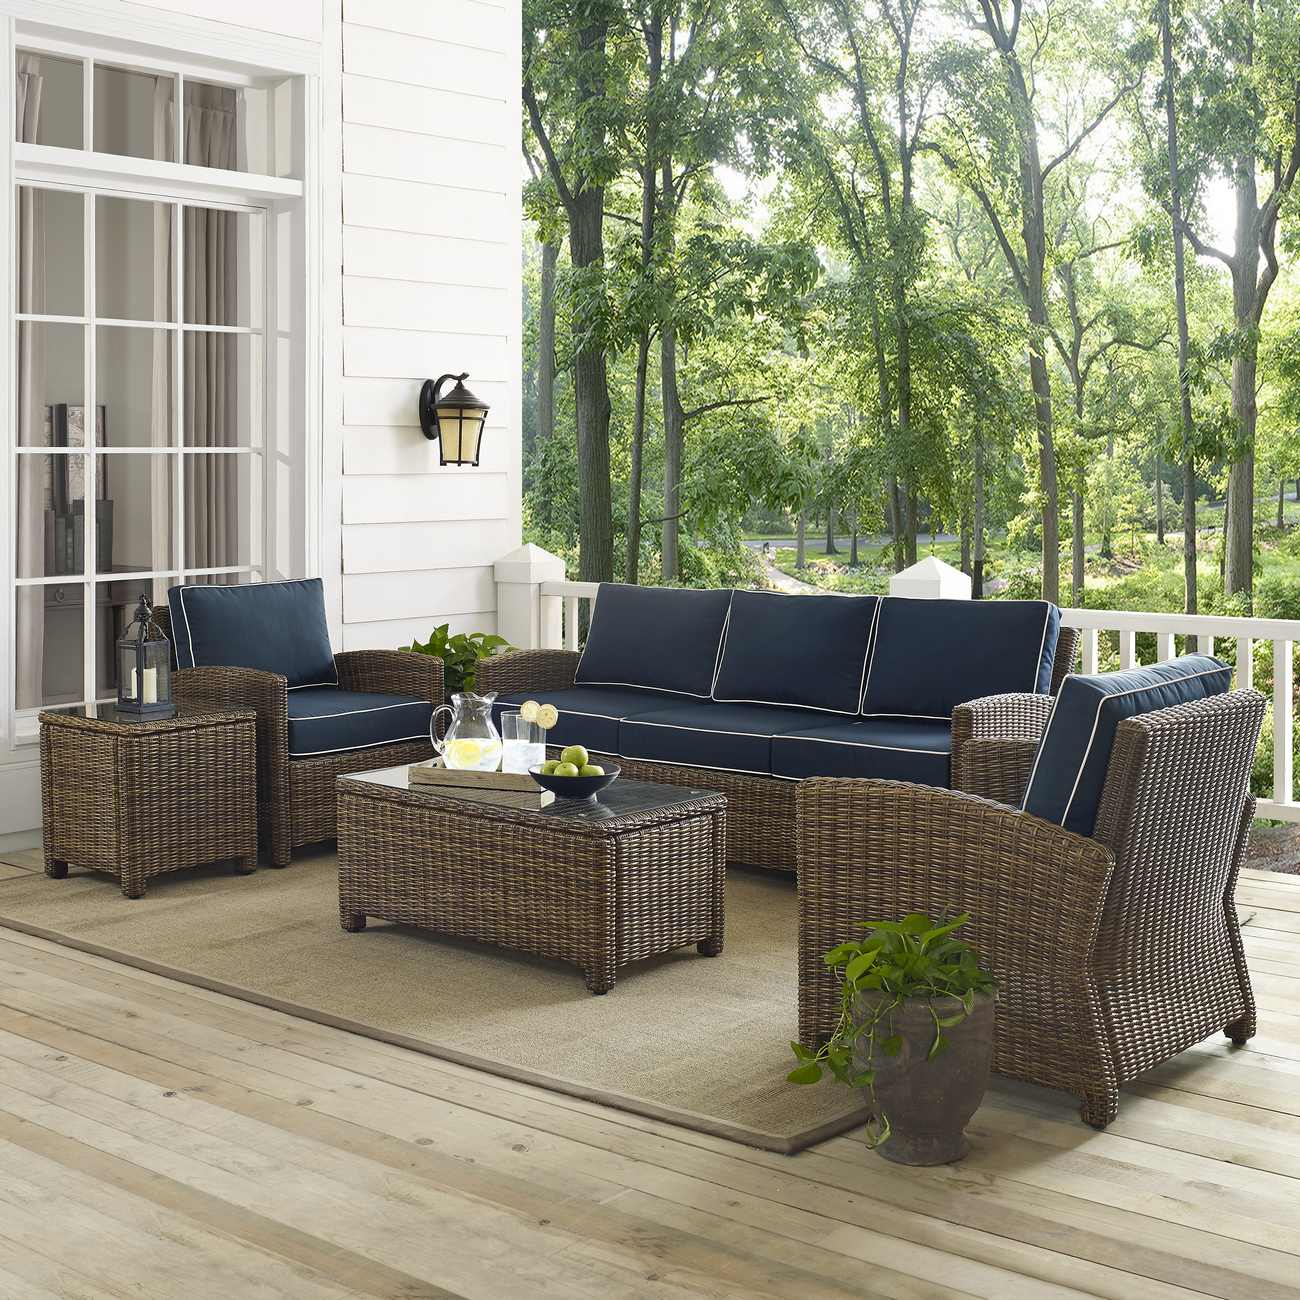 Crosley Brands Wicker Sofa Conversation Set Navy Cushions